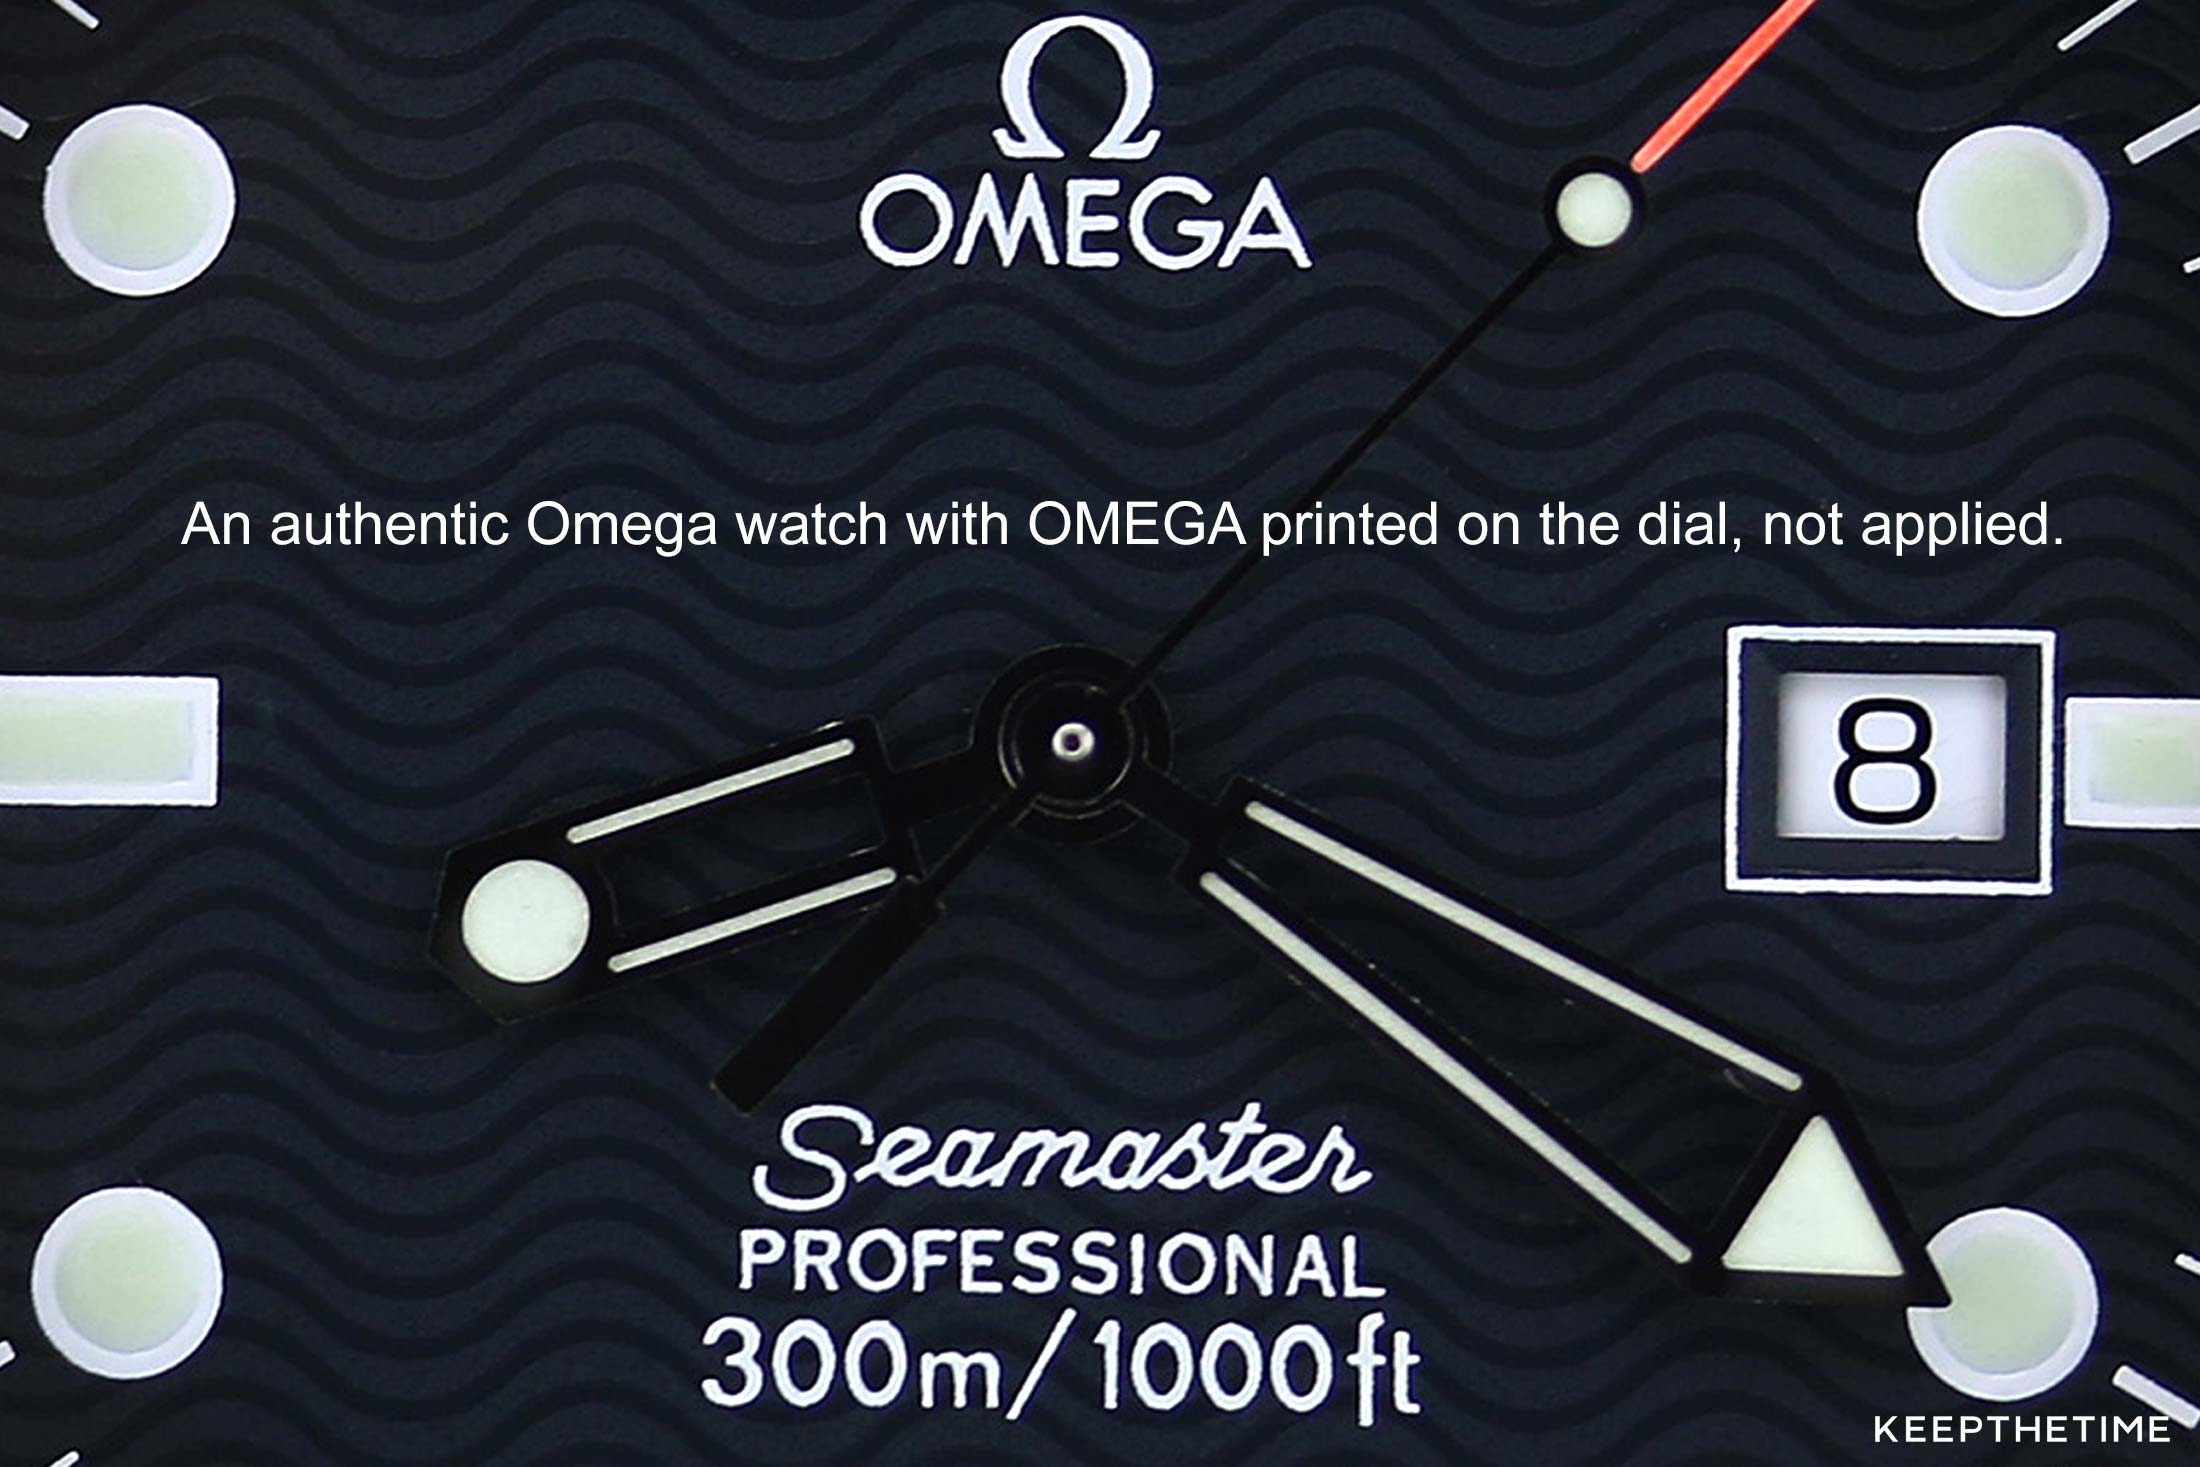 Authentic Omega Dial With Printed Logo